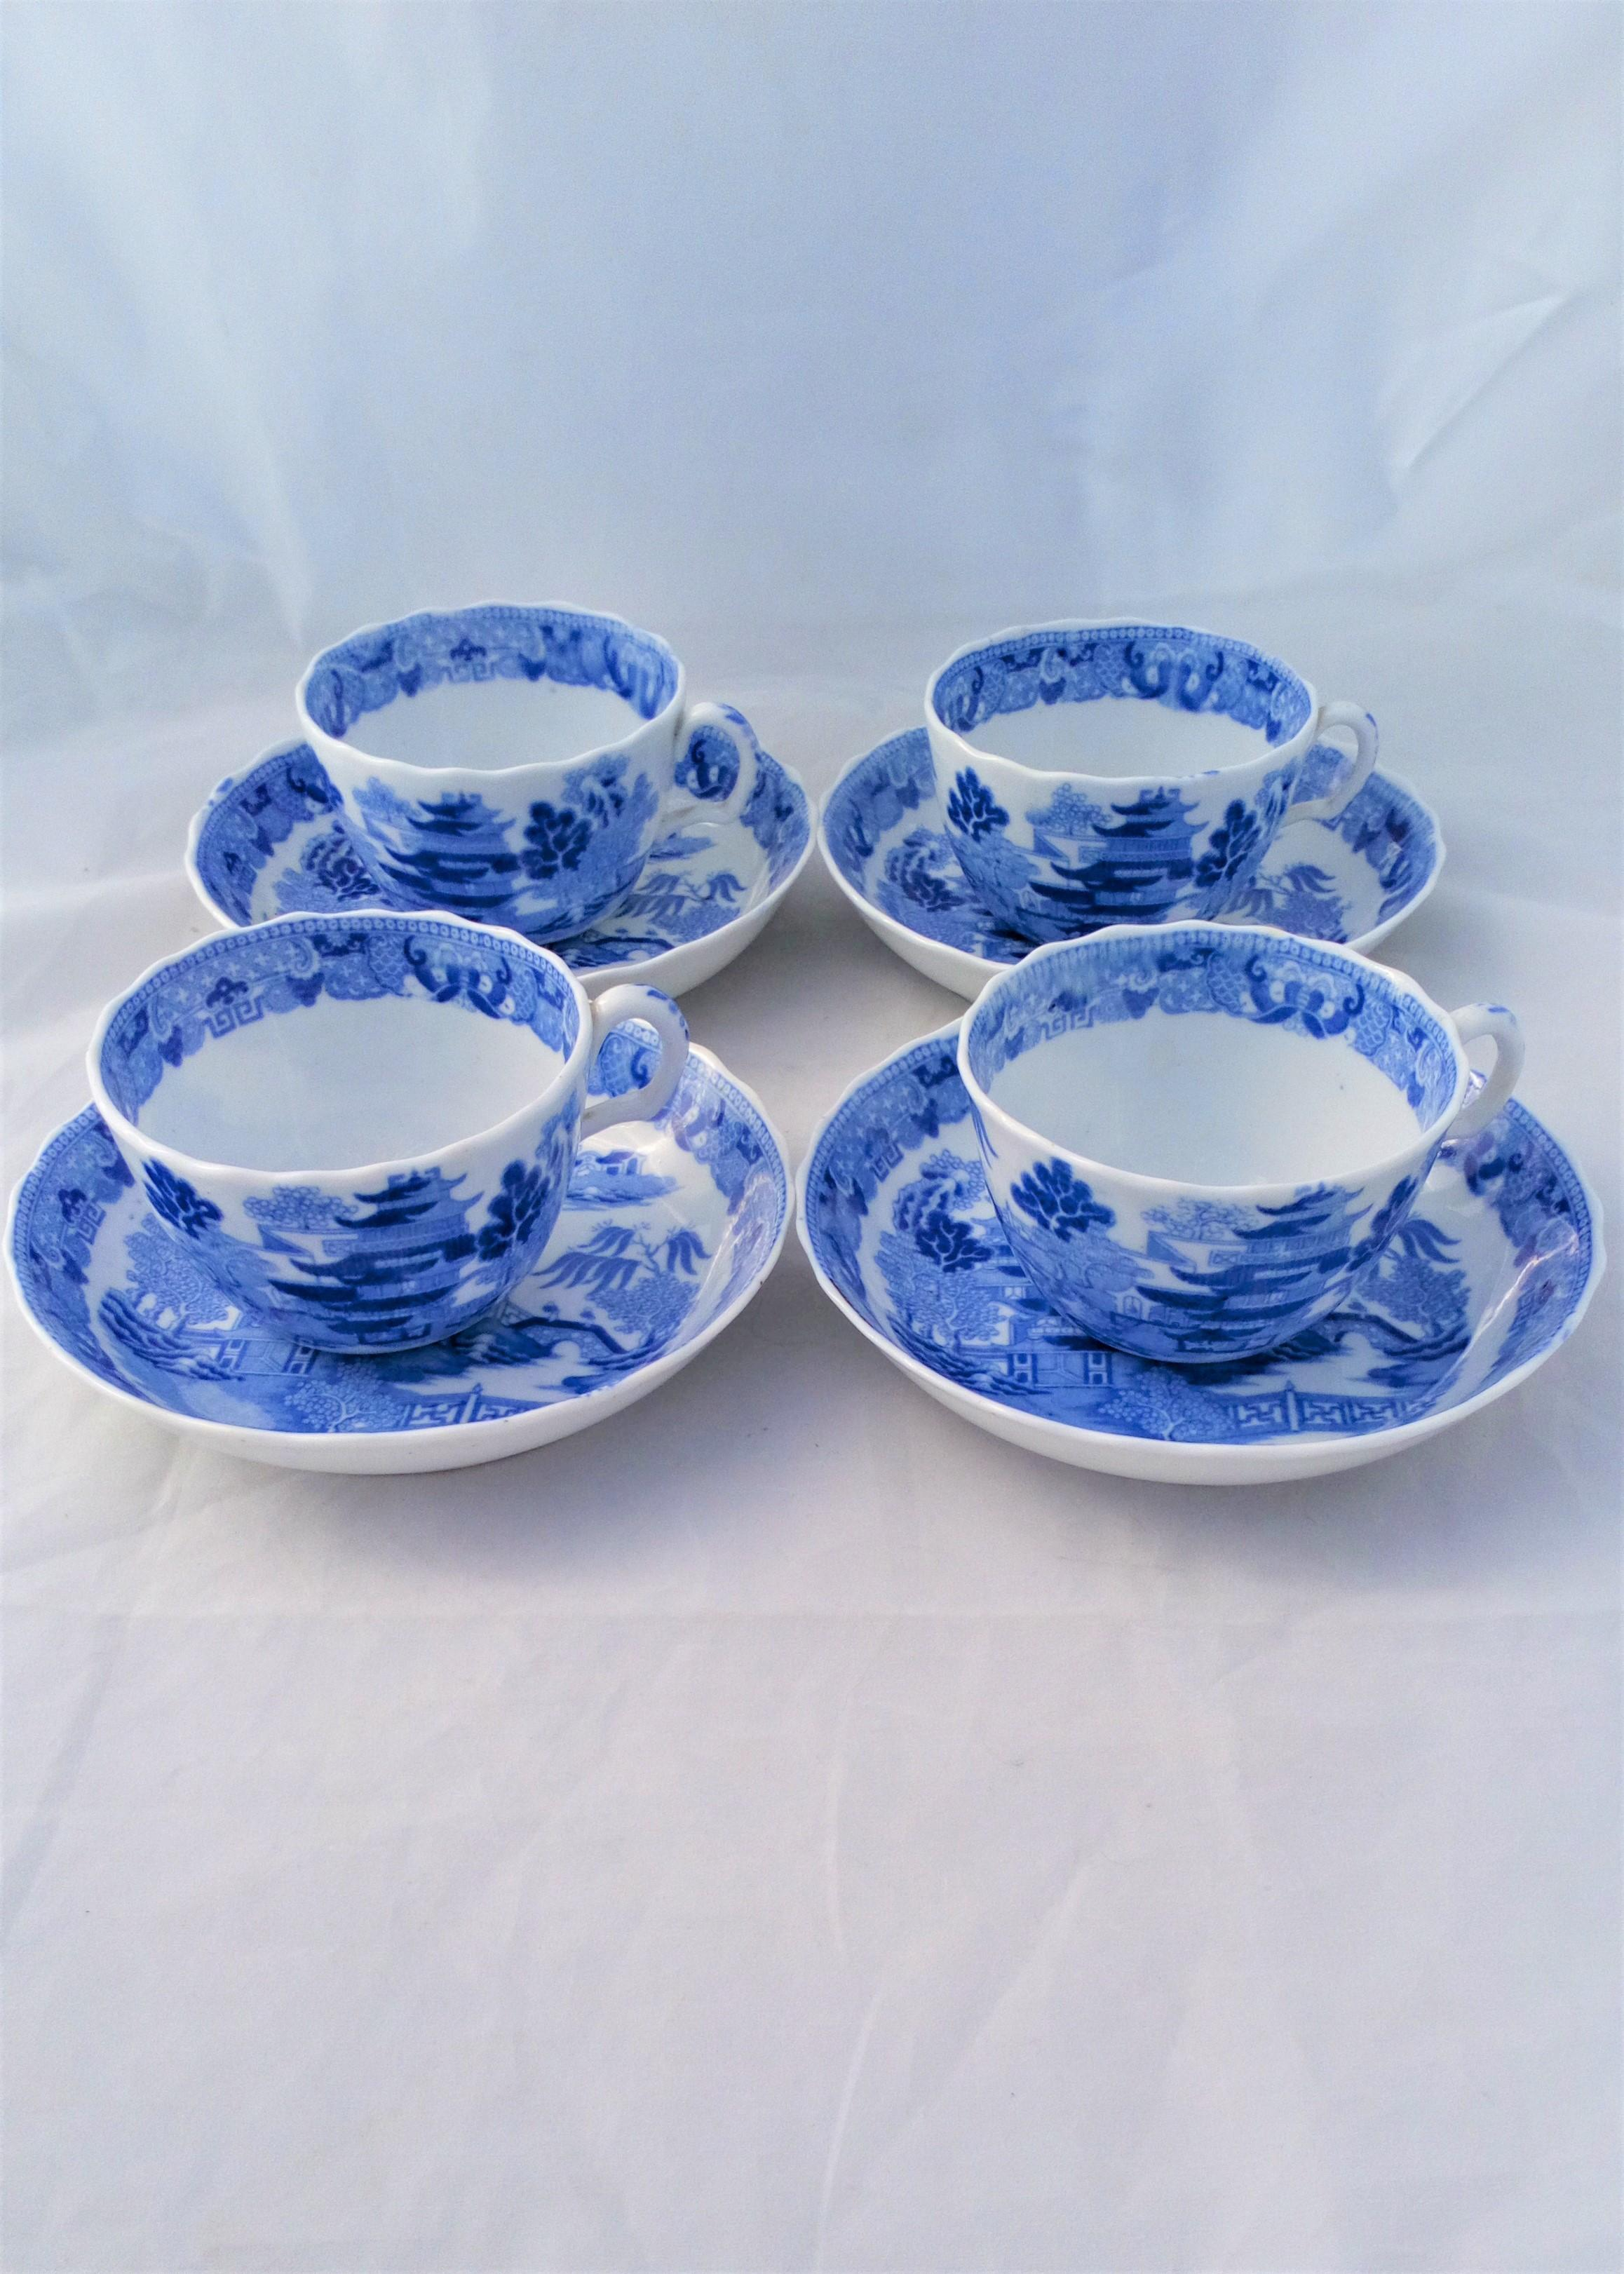 Miles Mason Porcelain Bute Cups Saucers Blue and White Broseley Pattern c 1810